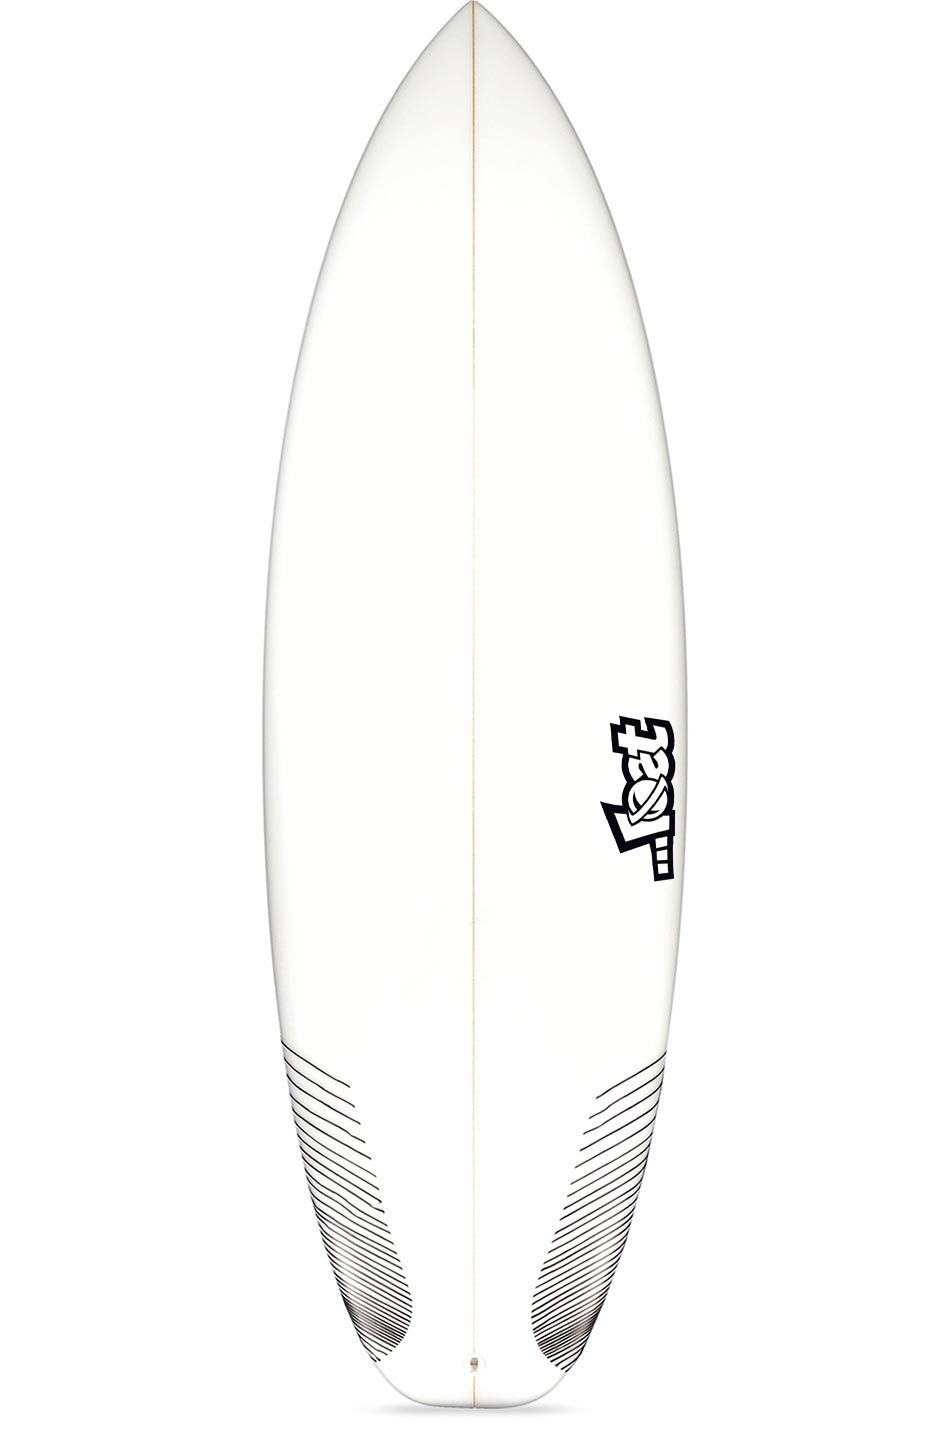 Prancha Surf Lost 5'9 PUDDLE JUMPER HP Squash Tail - White FCS II Multisystem 5ft9